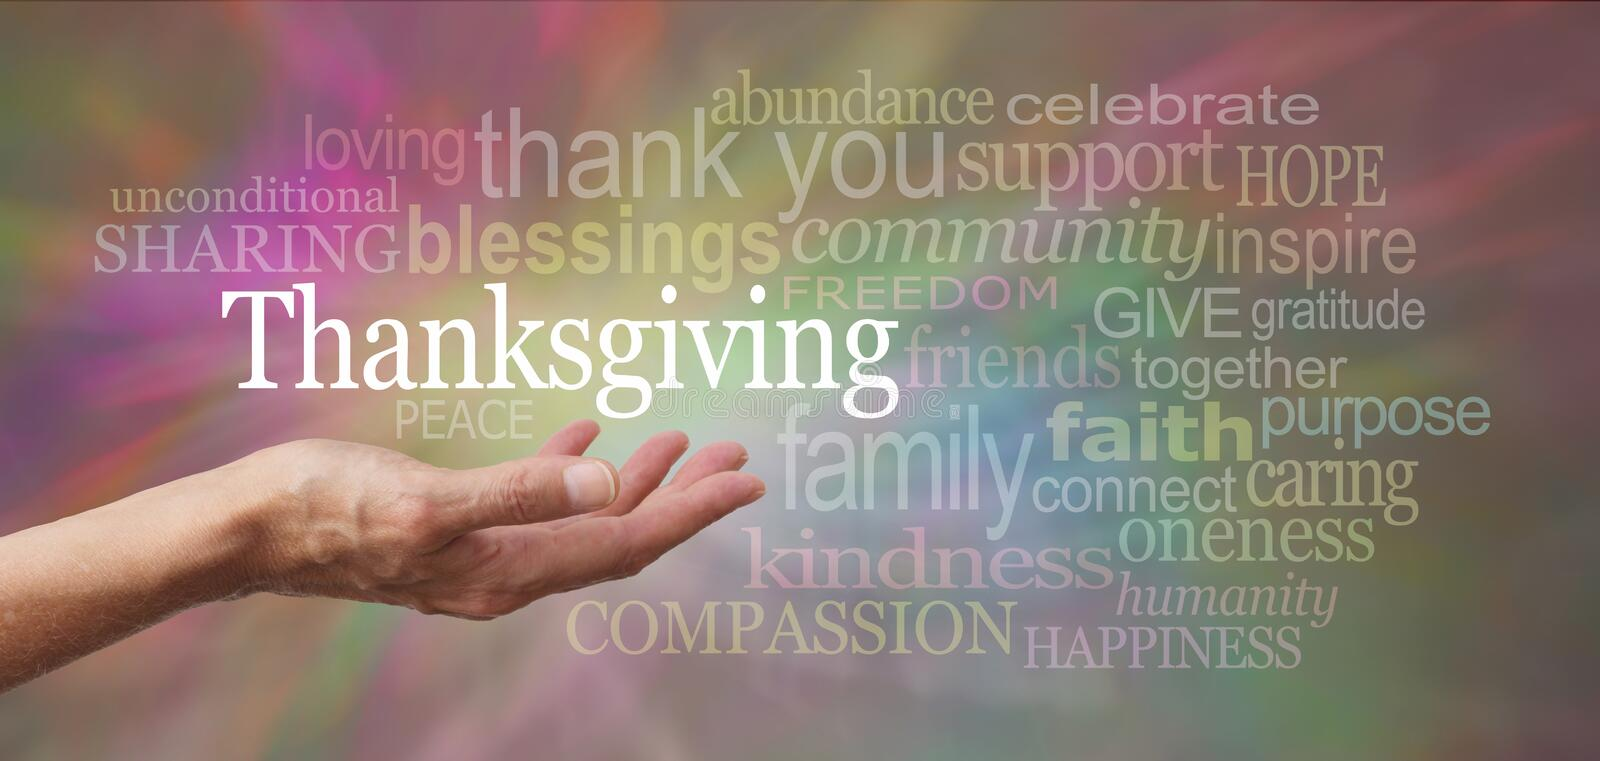 Thanksgiving in the palm of your hand. Female hand outstretched with palm side up and a white 'Thanksgiving' word floating above on a multicolored background